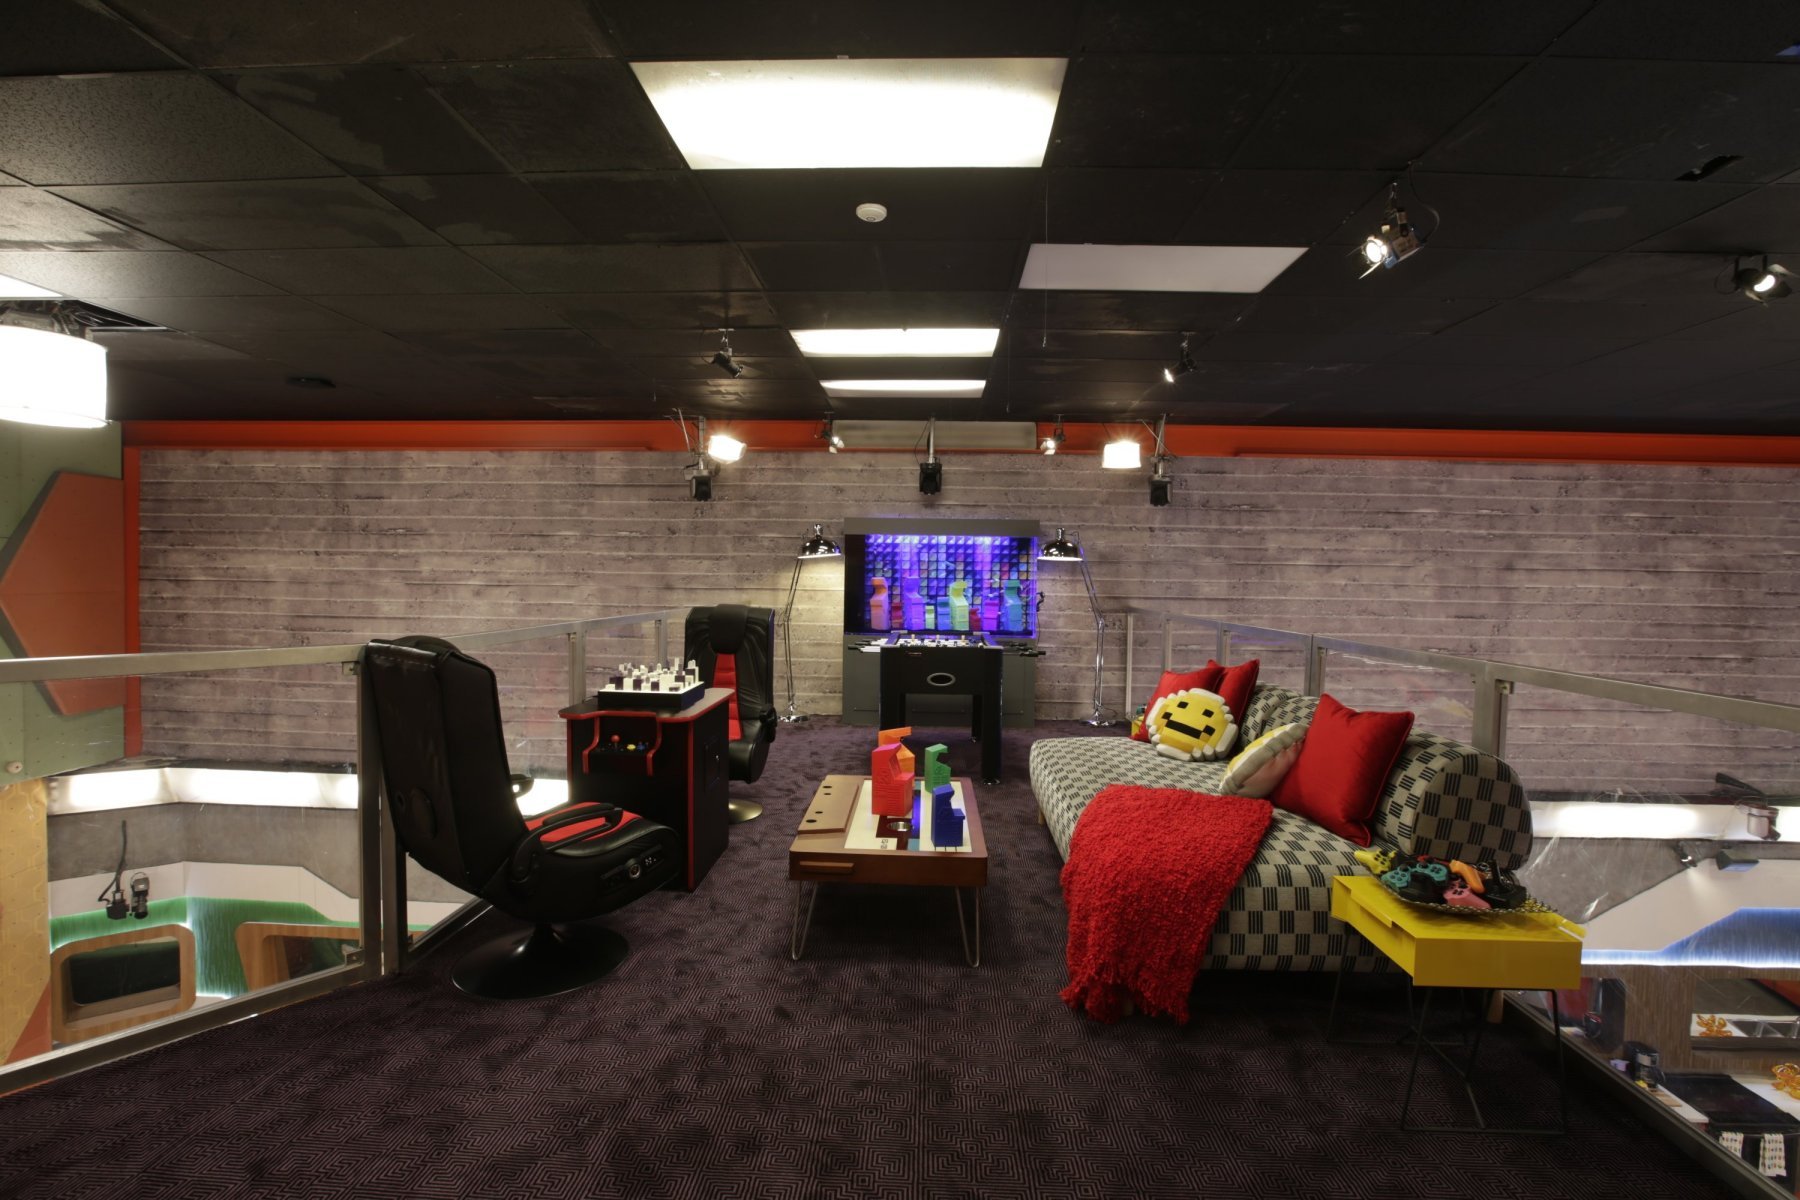 'Big Brother' Season 20 Twist And House Design Revealed